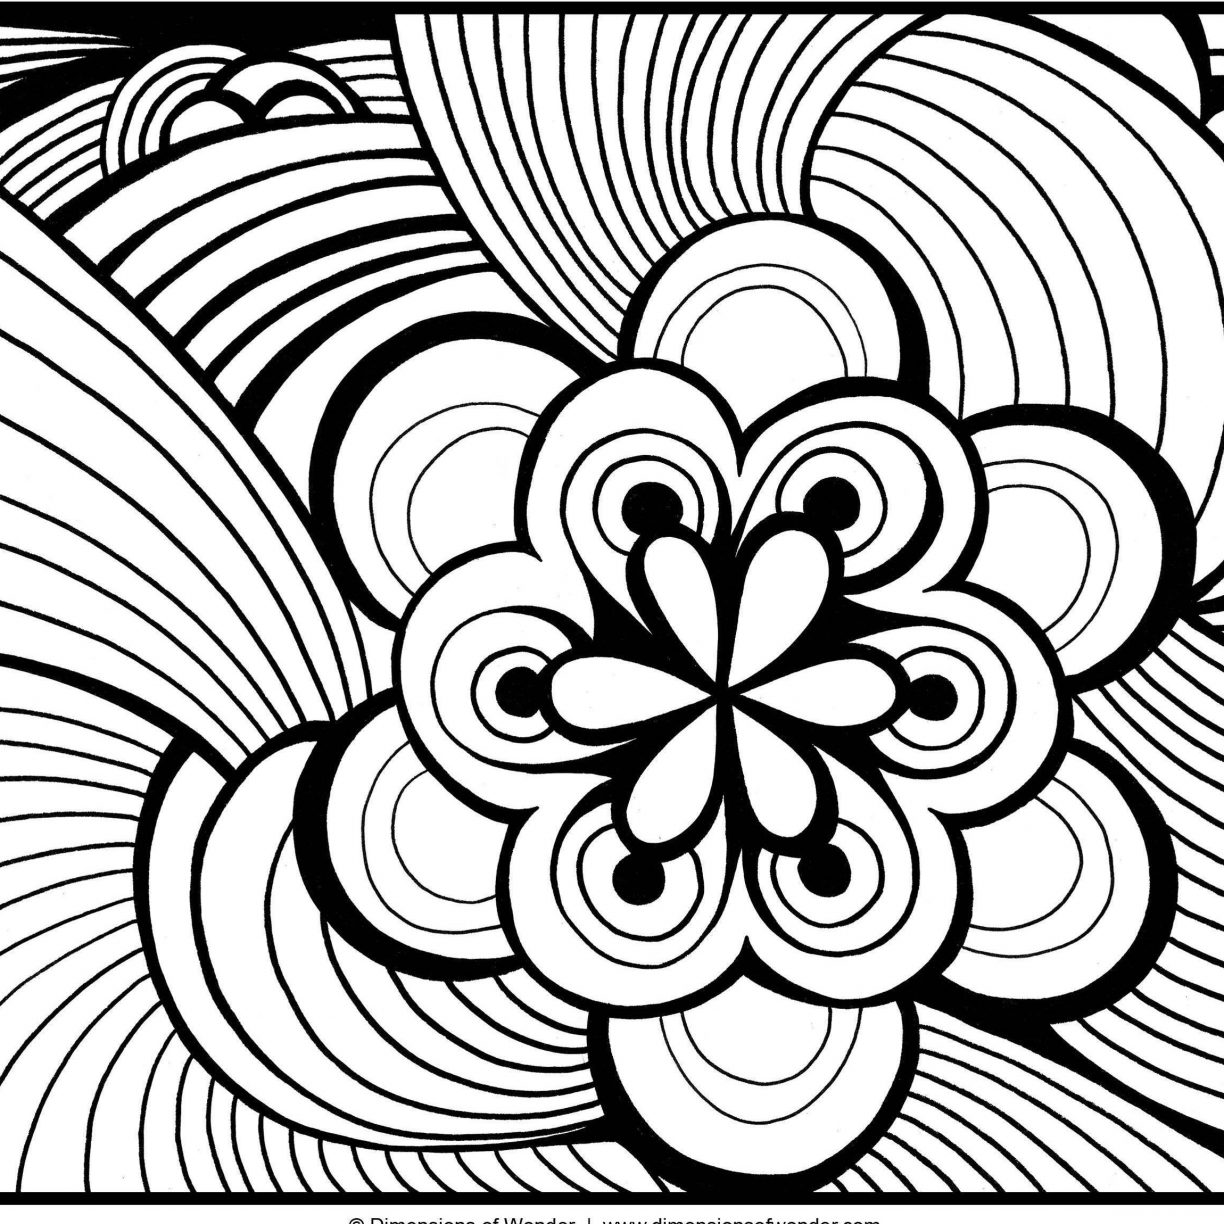 1224x1224 Coloring Booknline Colouring Pages For Kids Disney And Free